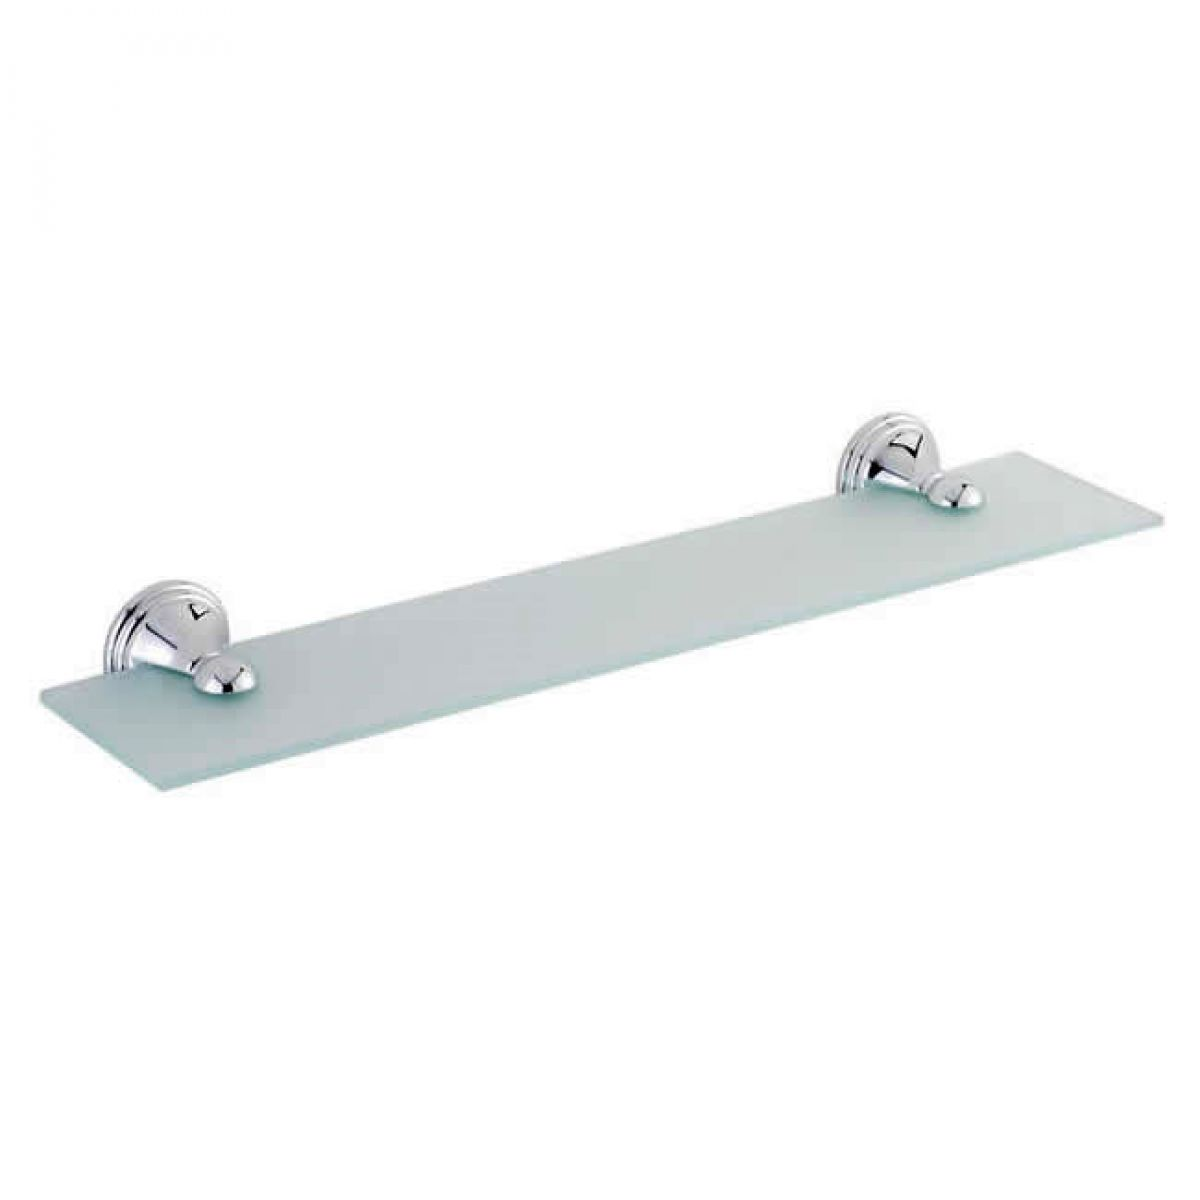 Tre mercati reno 50cm frosted glass bathroom shelf 60150 for Bathroom glass shelves